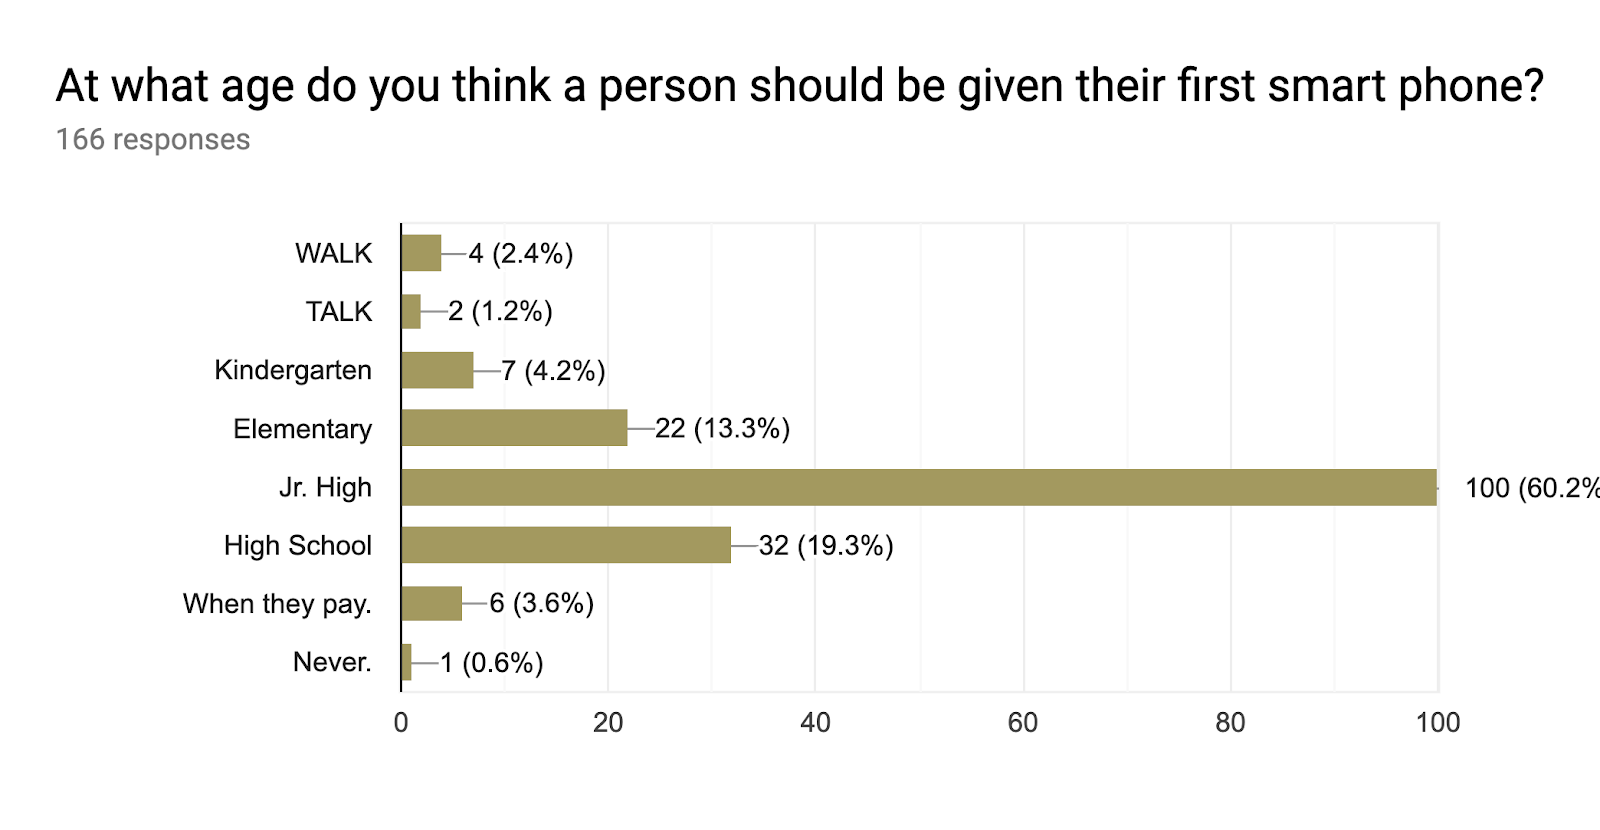 Forms response chart. Question title: At what age do you think a person should be given their first smart phone?. Number of responses: 166 responses.